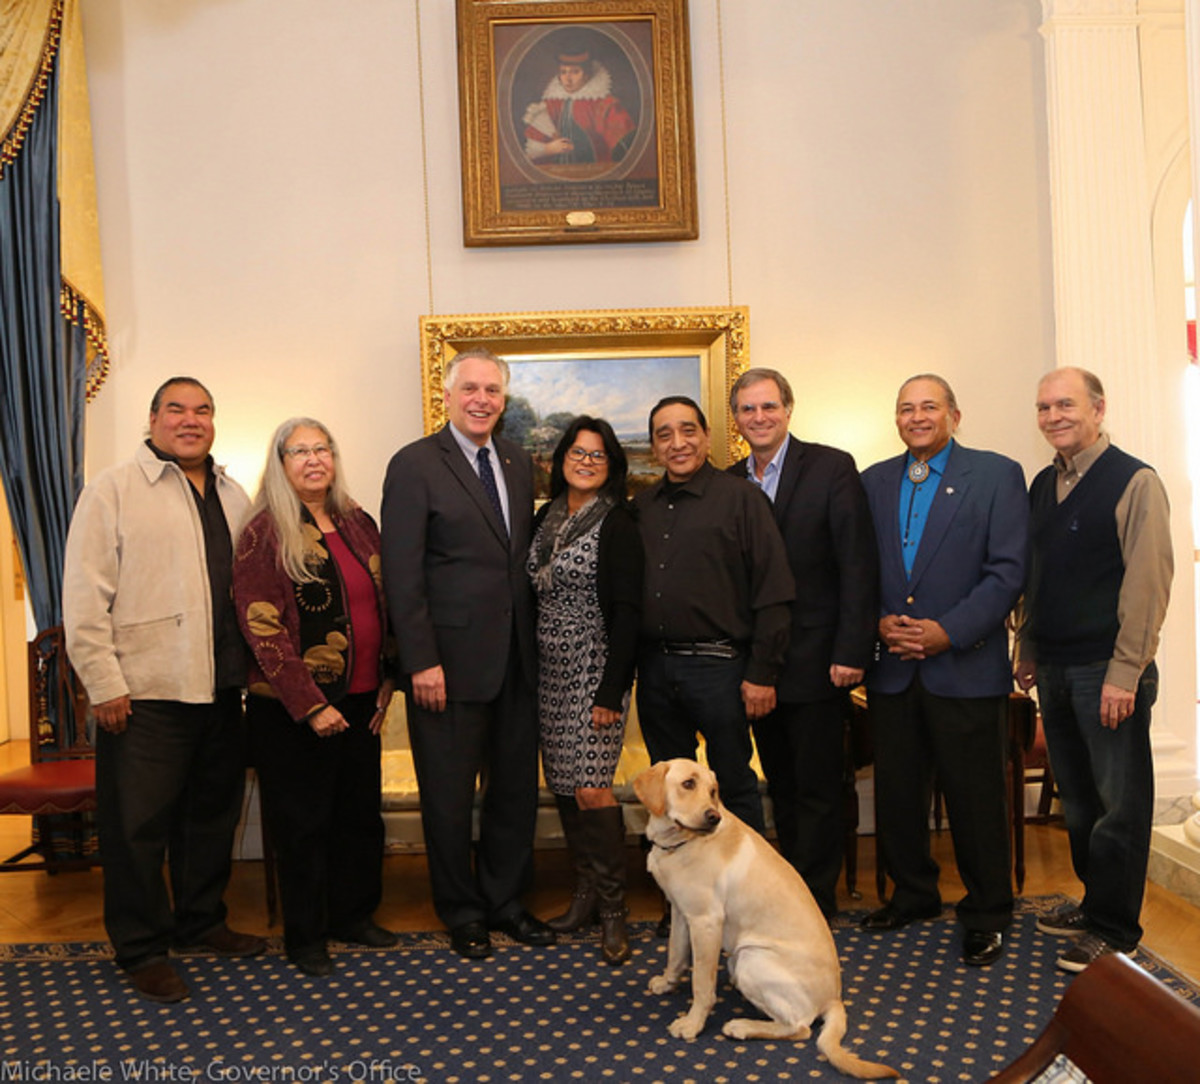 Gov. McAuliffe's puppy approves. 'The Pocahontas Reframed Film Festival' has already received support from the Commonwealth of Virginia, the day after the festival, Eyre, Lightning, Aguilar and Virginia tribal leaders were invited to meet with Virginia Governor Terry McAuliffe.